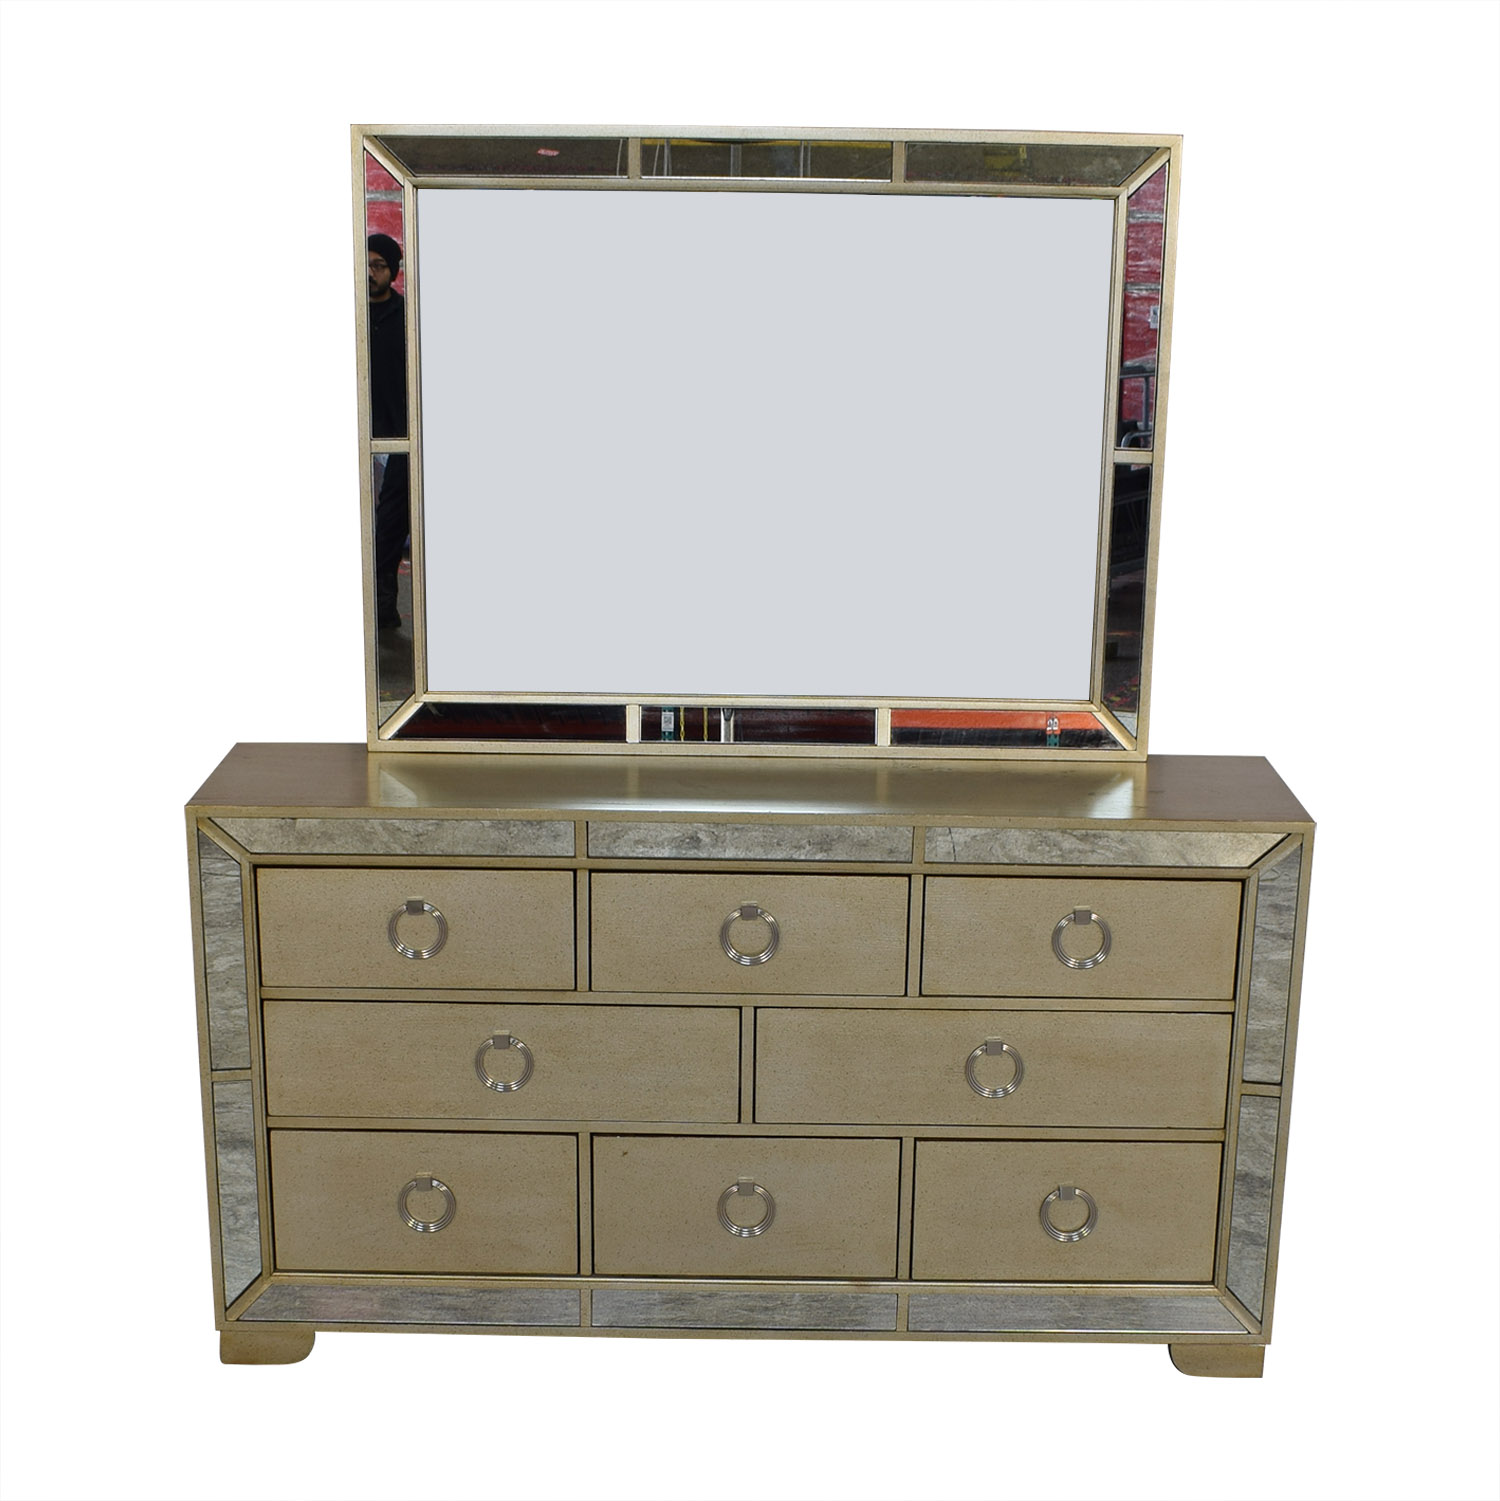 Macy's Macy's Ailey Collection Dresser with Mirror dimensions